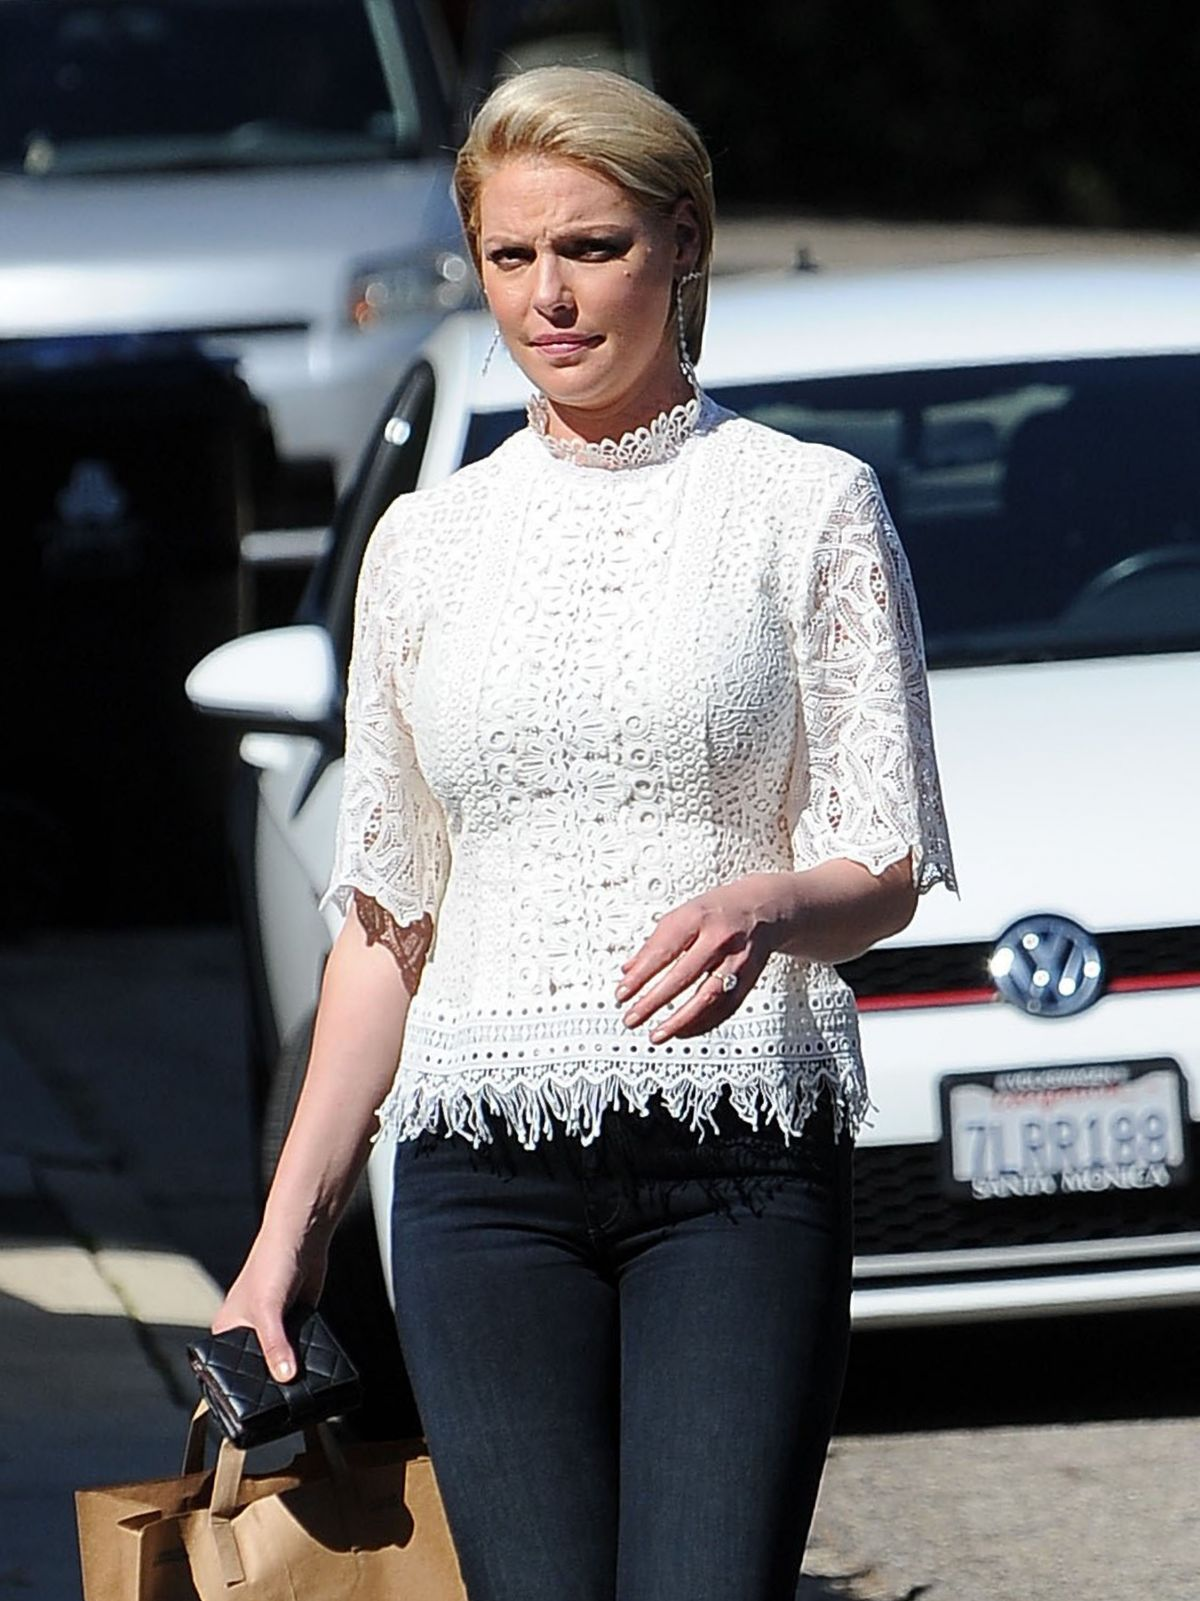 Katherine Heigl Shopping in Los Feliz - Celebzz Katherine Heigl